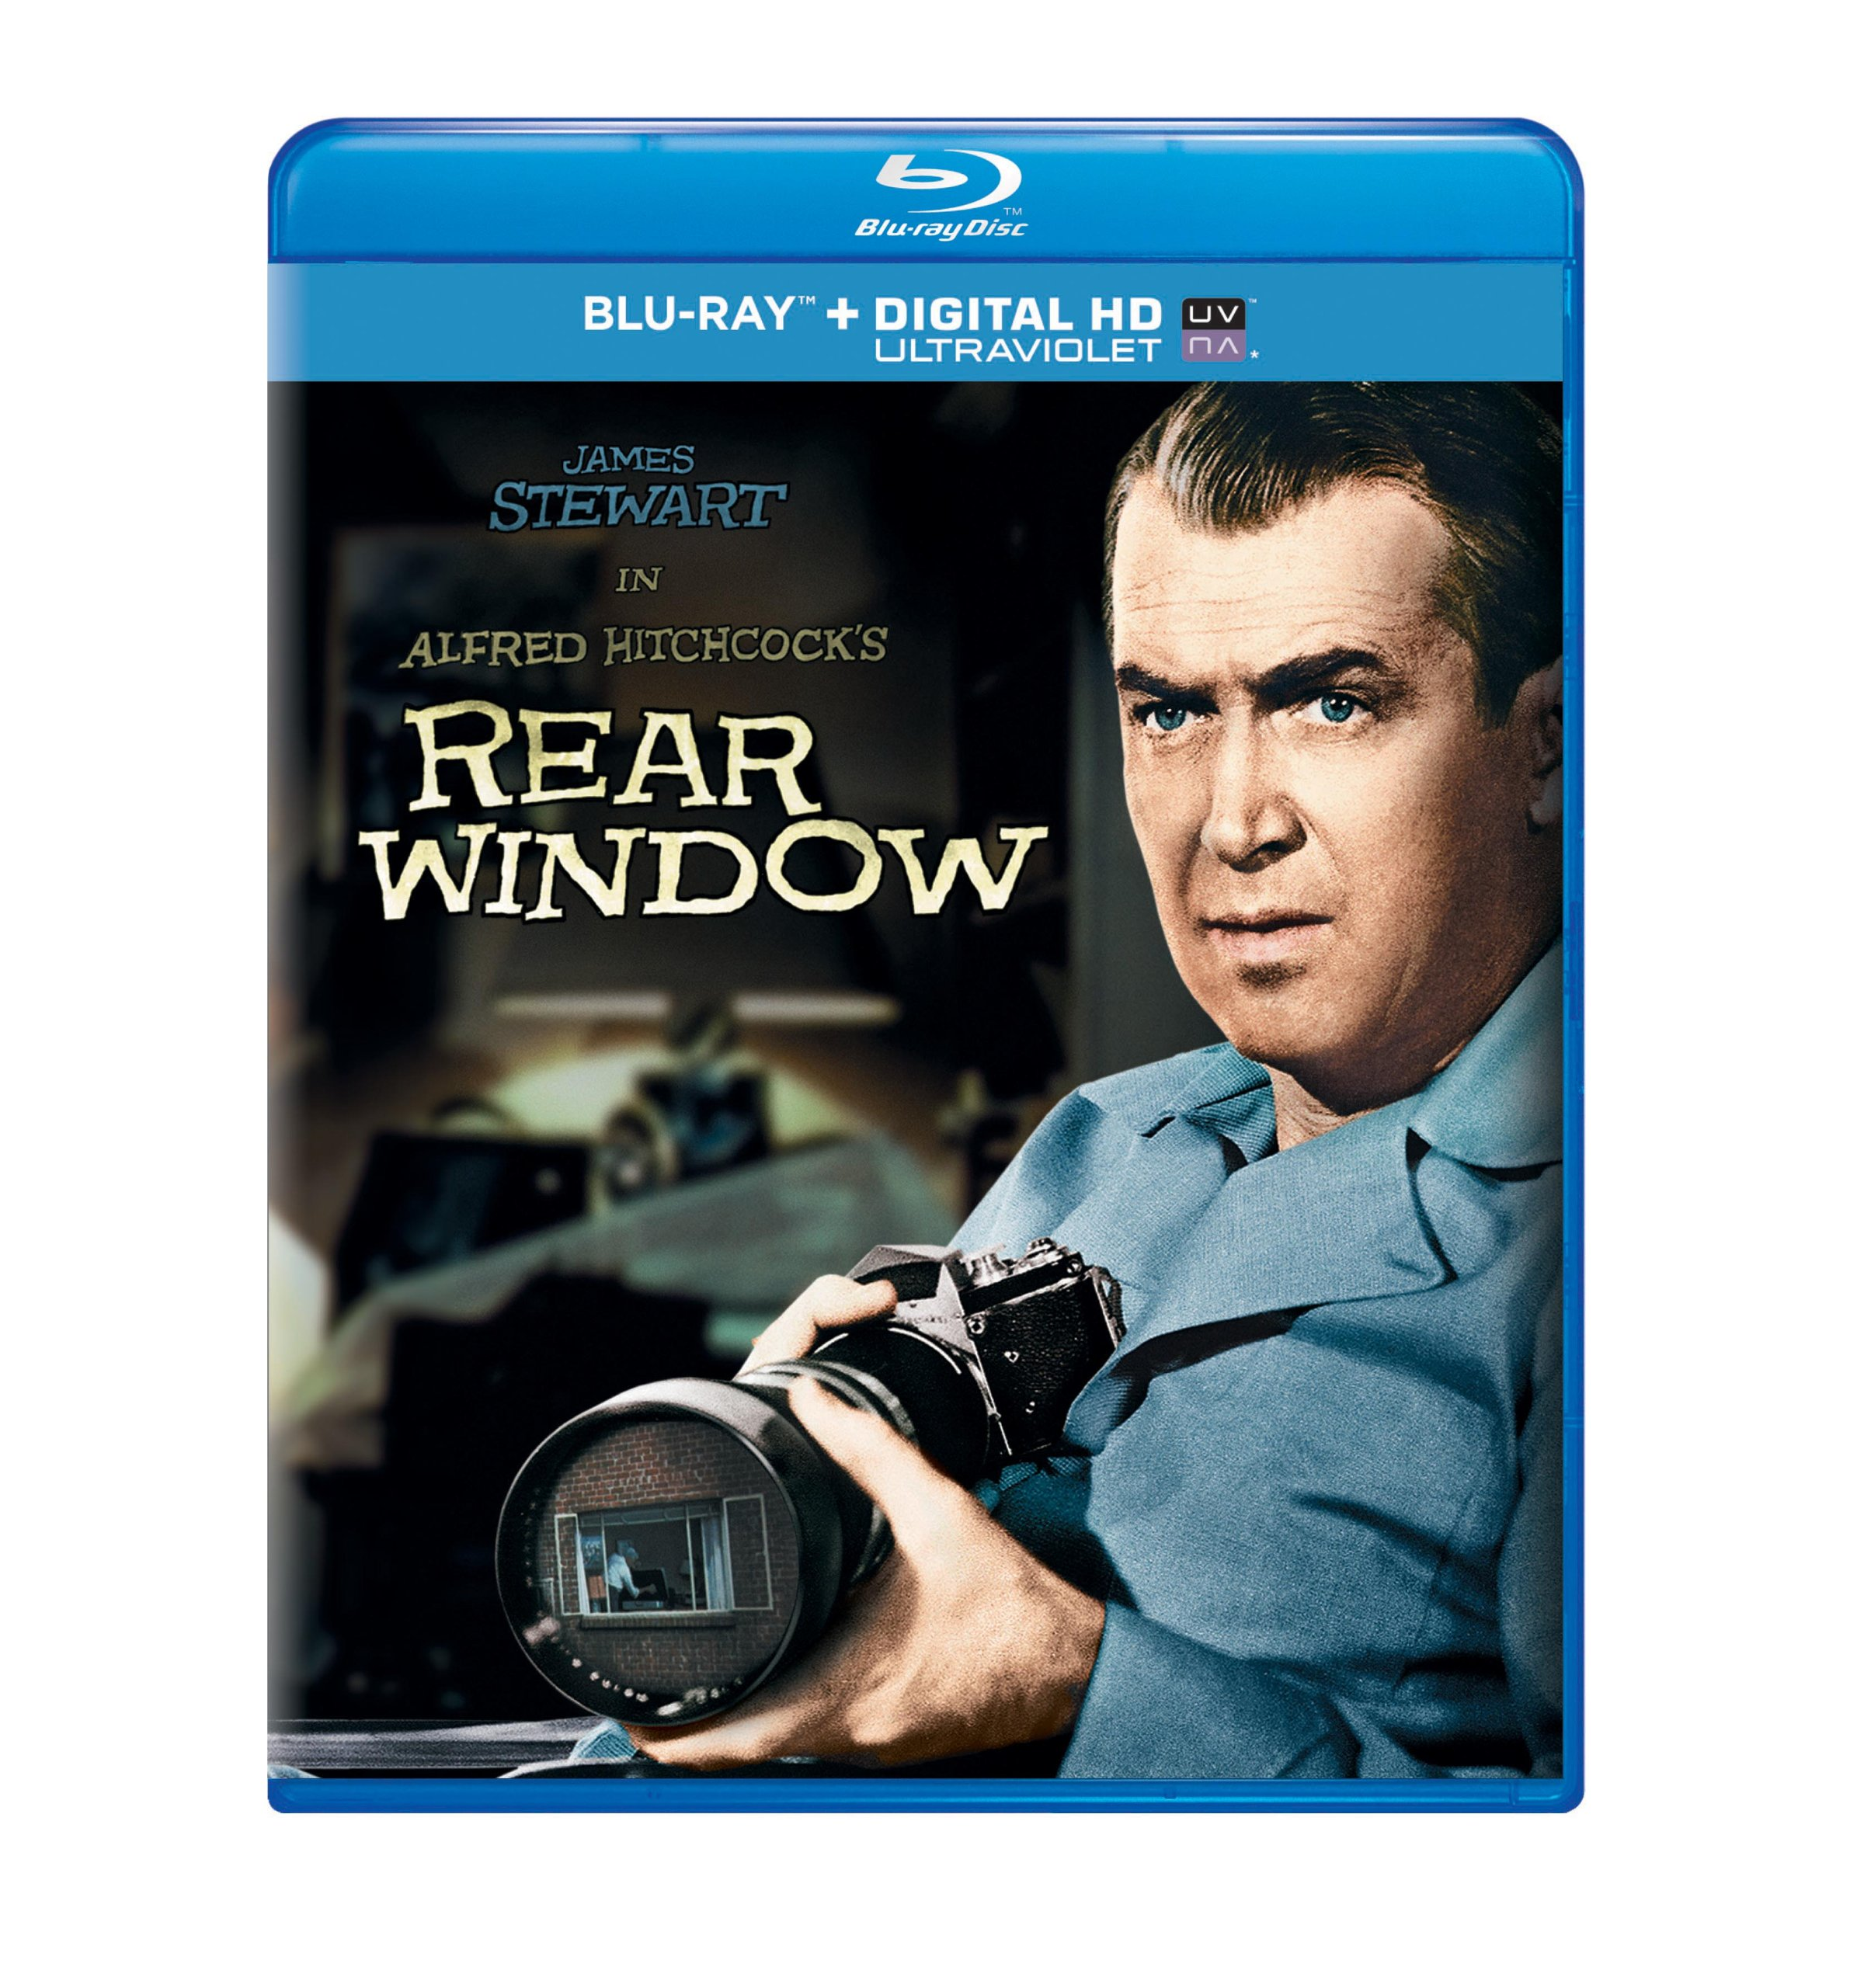 Blu-ray : Rear Window (Ultraviolet Digital Copy, Digital Copy, Snap Case)